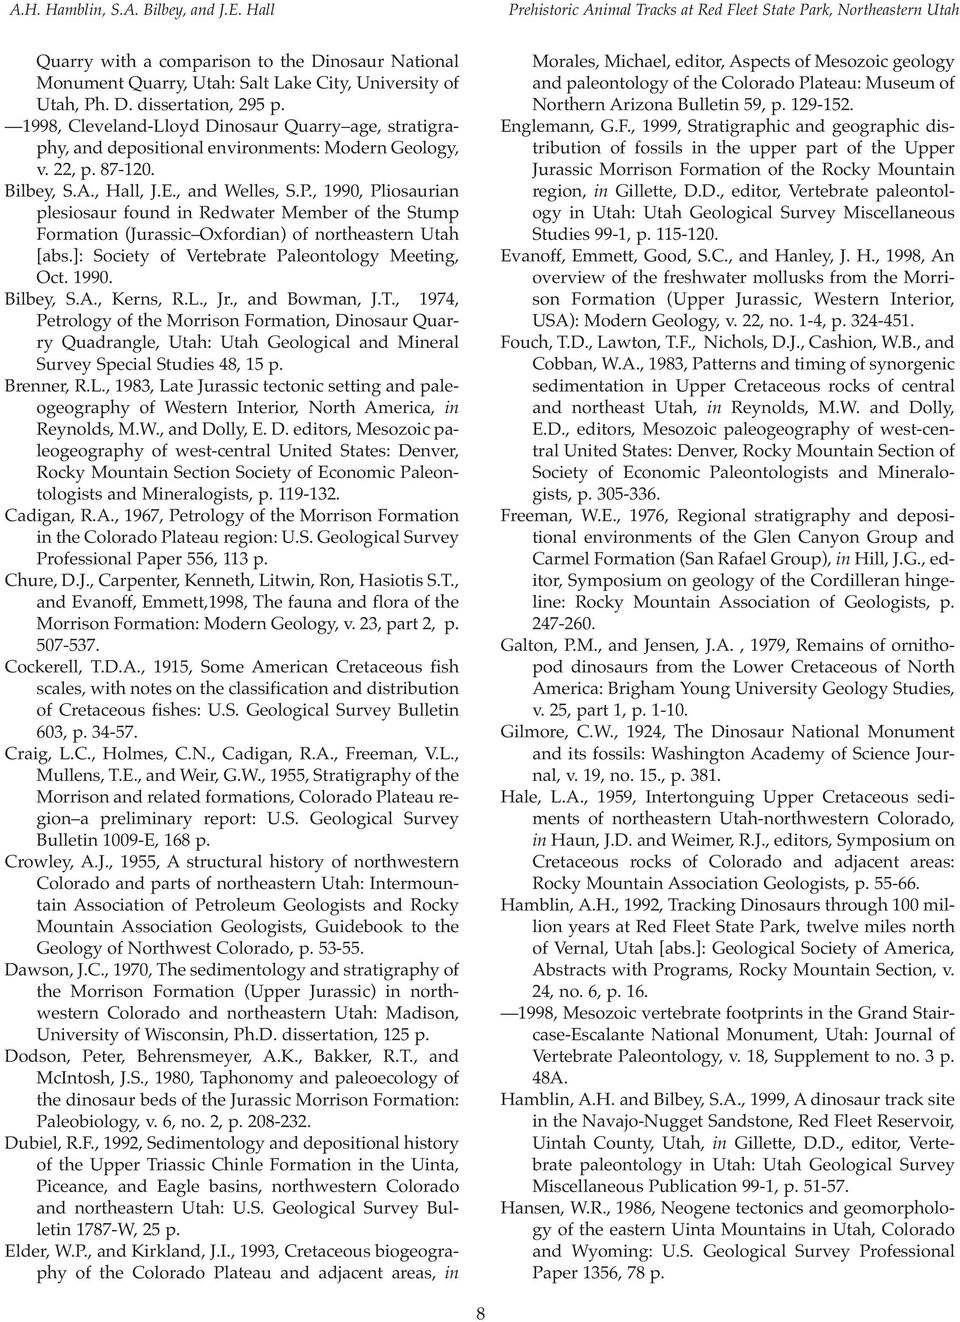 1998, Cleveland-Lloyd Dinosaur Quarry age, stratigraphy, and depositional environments: Modern Geology, v. 22, p. 87-120. Bilbey, S.A., Hall, J.E., and Welles, S.P.